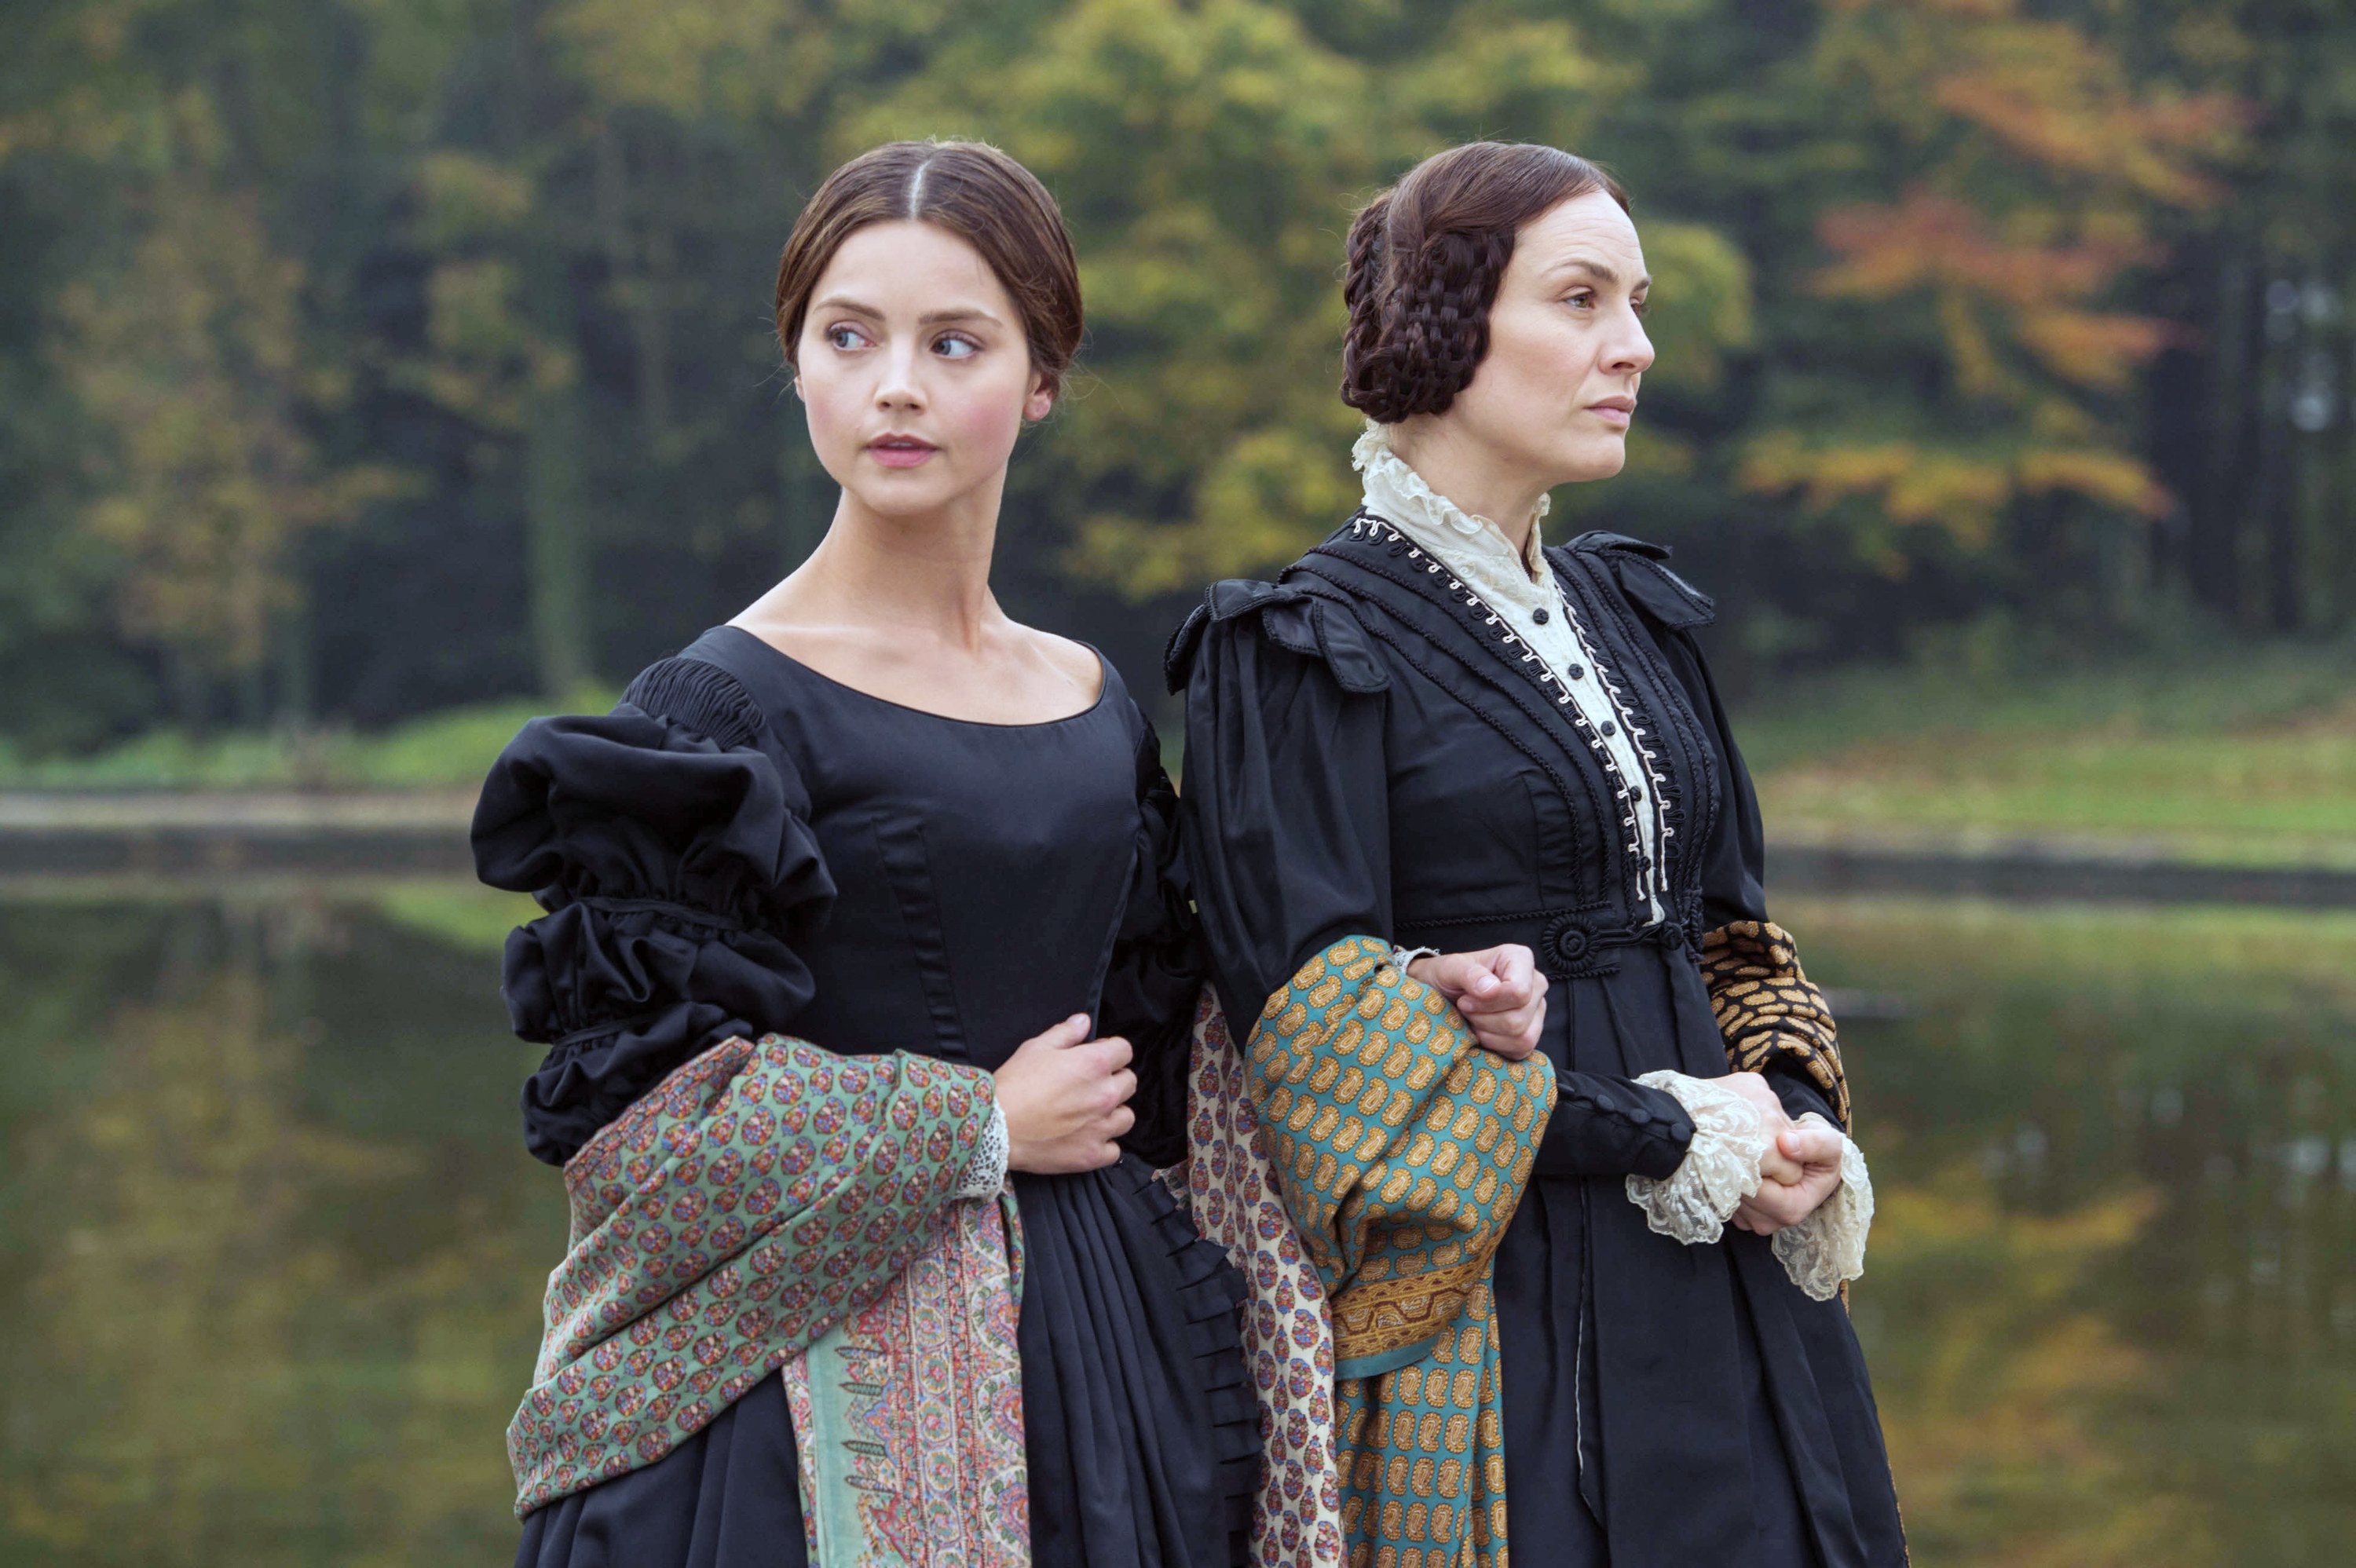 VICTORIA, (from left): Jenna Coleman, Daniela Holtz, 'Doll 123', (Season 1, ep. 101, airs in US on Jan. 17, 2017)